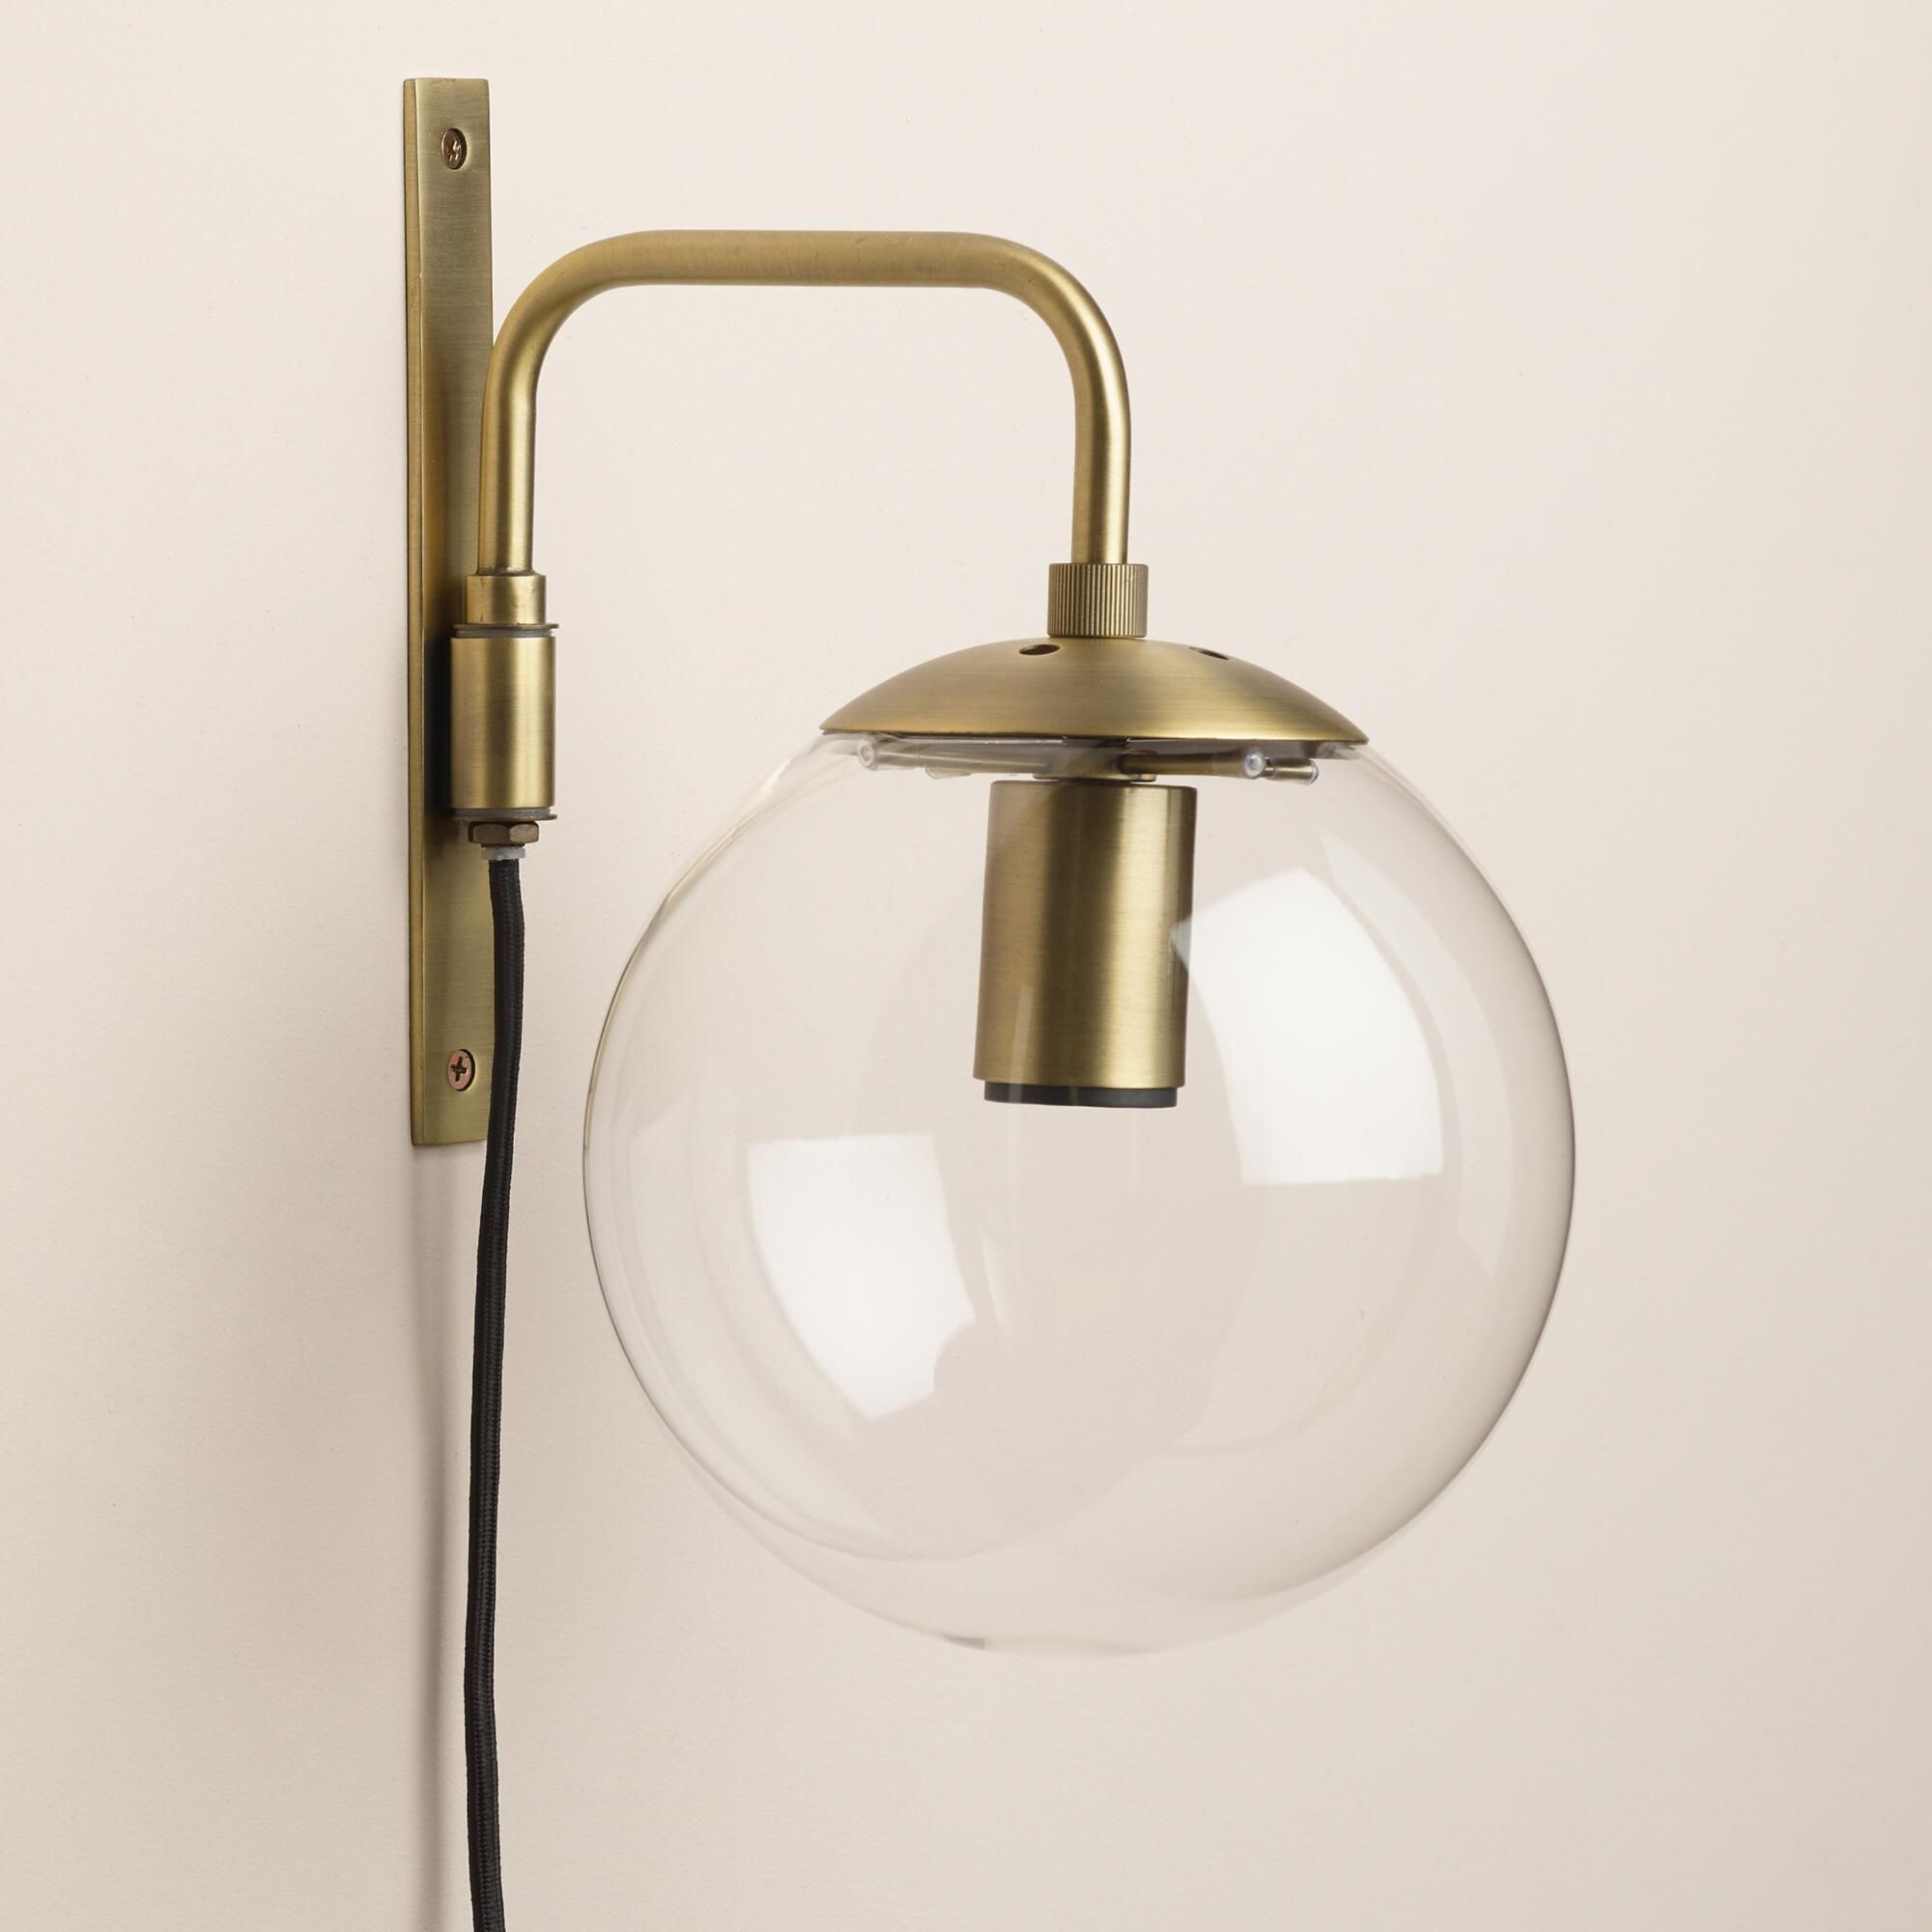 Glass Globe Wall Sconce Wall Sconces Bedroom Bathroom Wall Sconces Plug In Wall Sconce Glass globe wall sconce